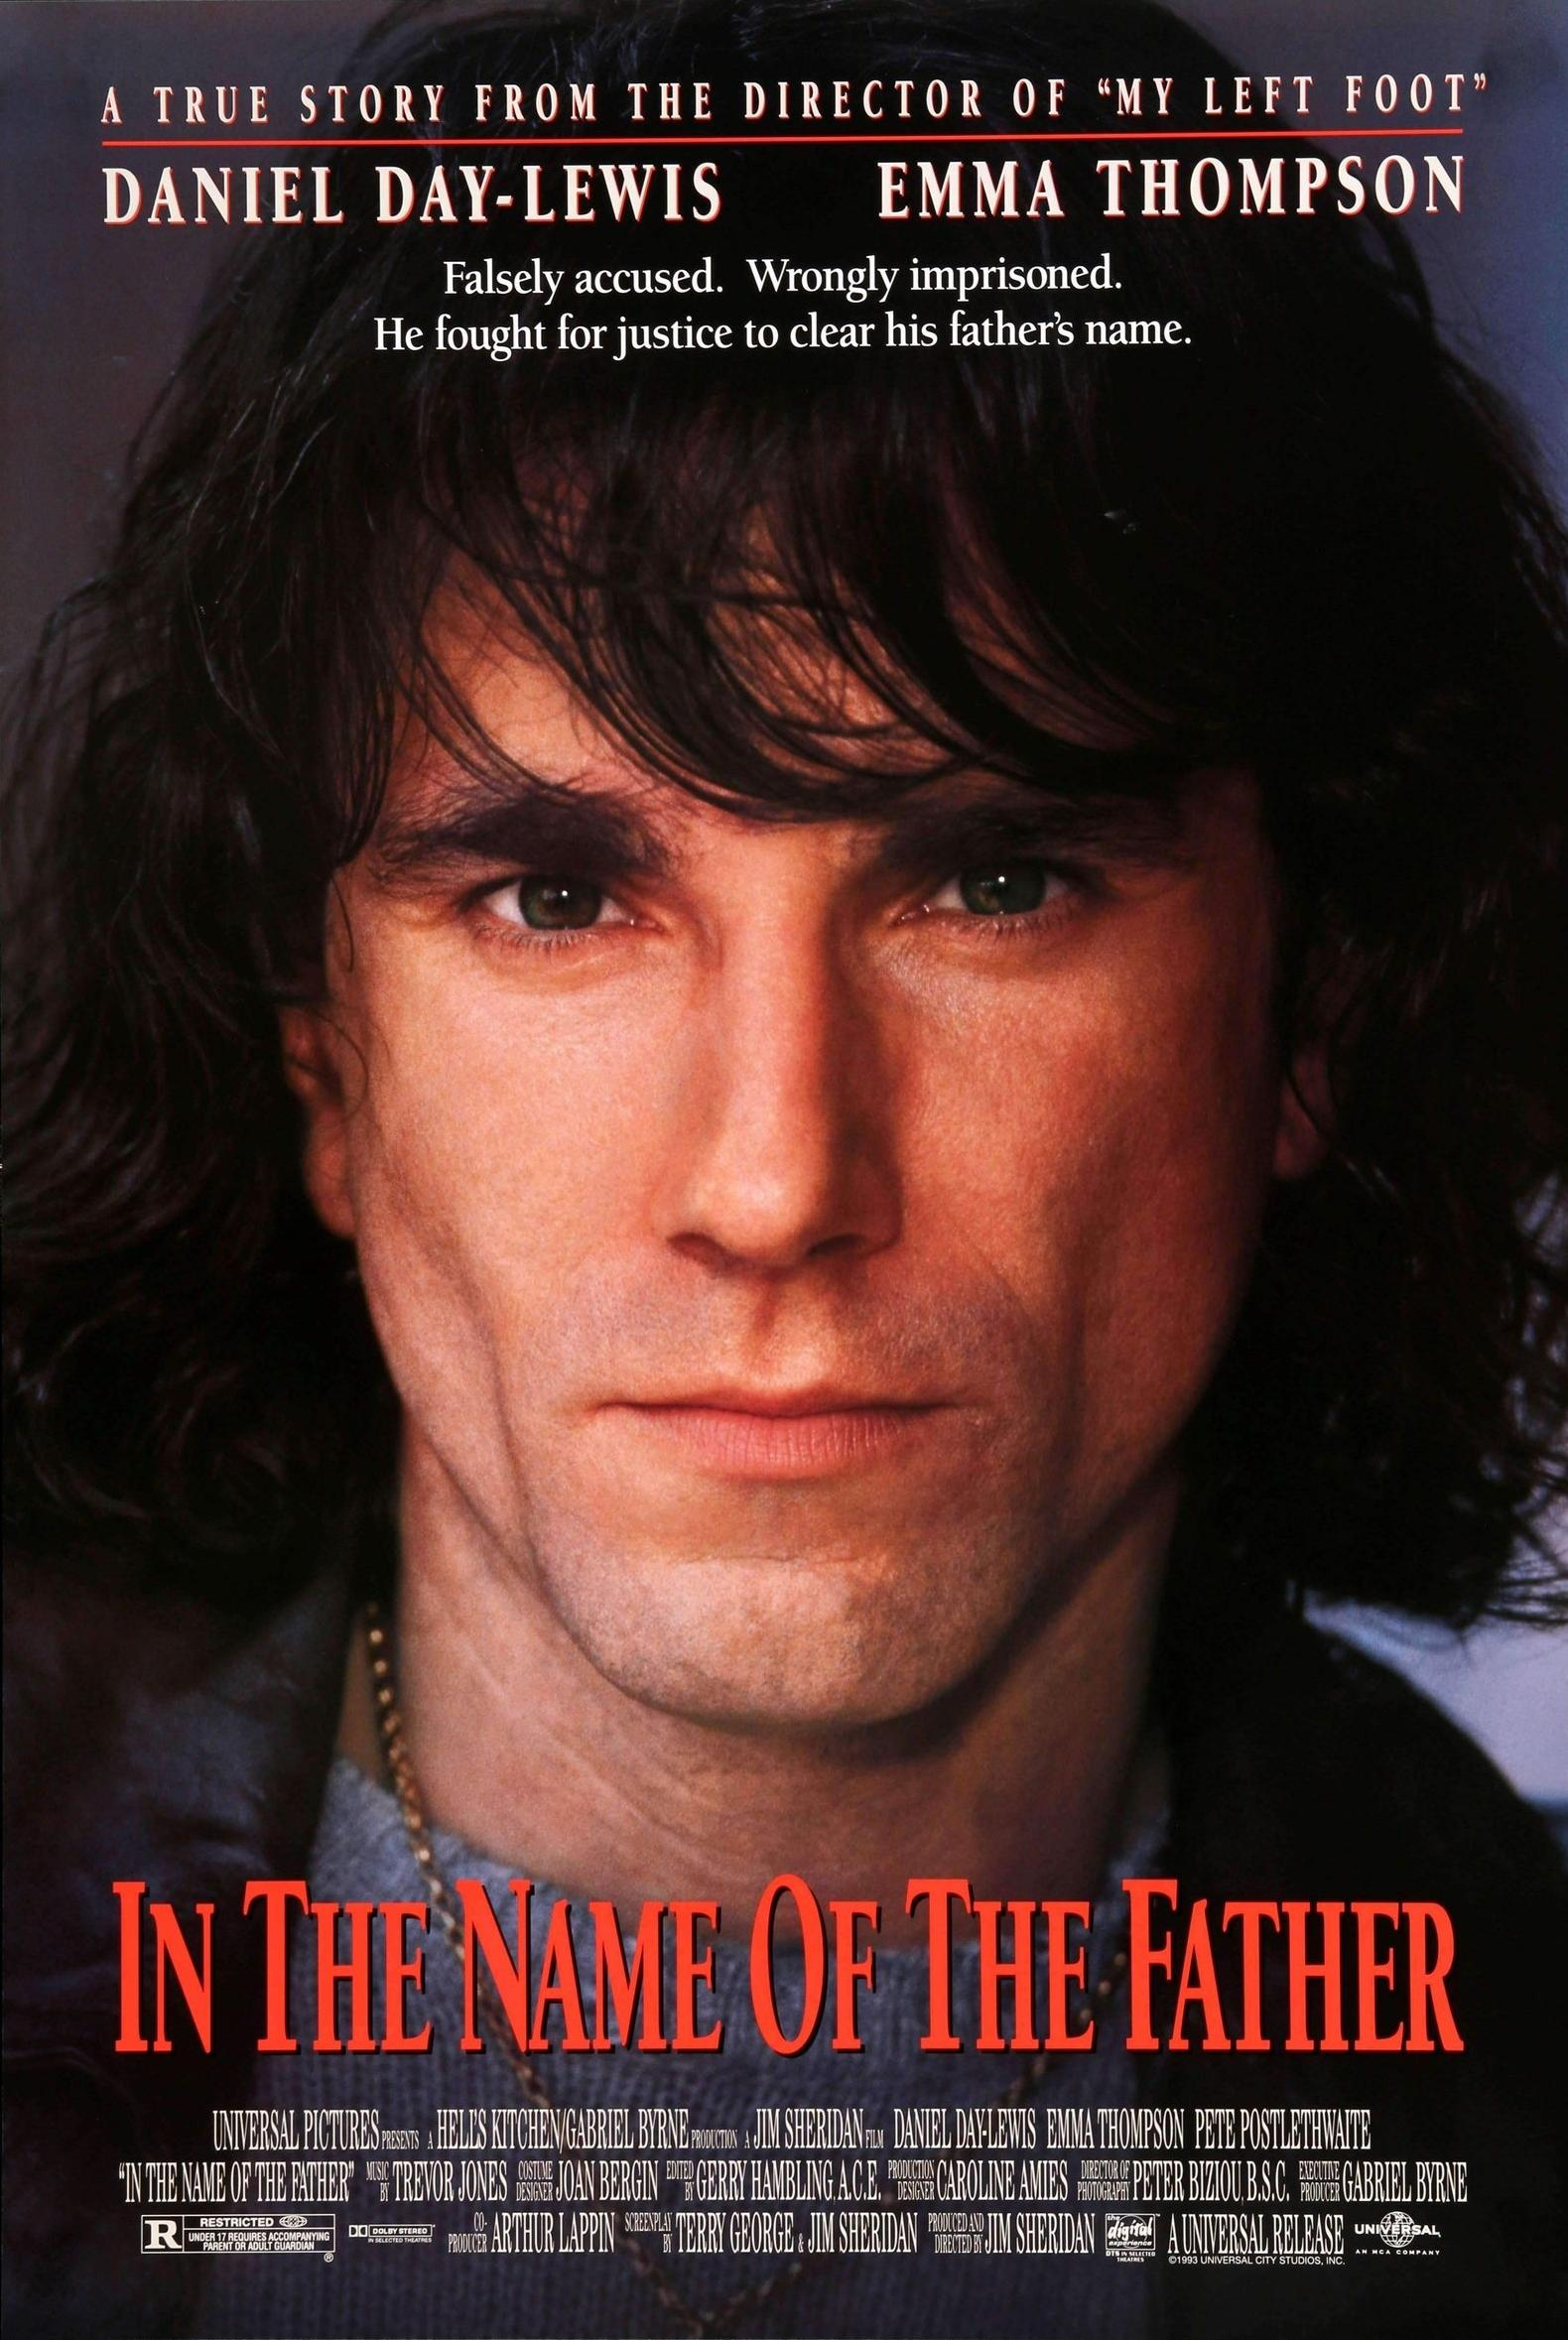 In The Name of the Father (1993) - Directed by: Jim SheridanStarring: Daniel Day Lewis, Pete Postlethwaite, Emma ThompsonRated: R for Language and Politically-Generated ViolenceRunning Time: 2 h 13 mTMM Score: 3.5 stars out of 5STRENGTHS: Acting, StoryWEAKNESSES: Uneven Pacing, A Bit Dramatic